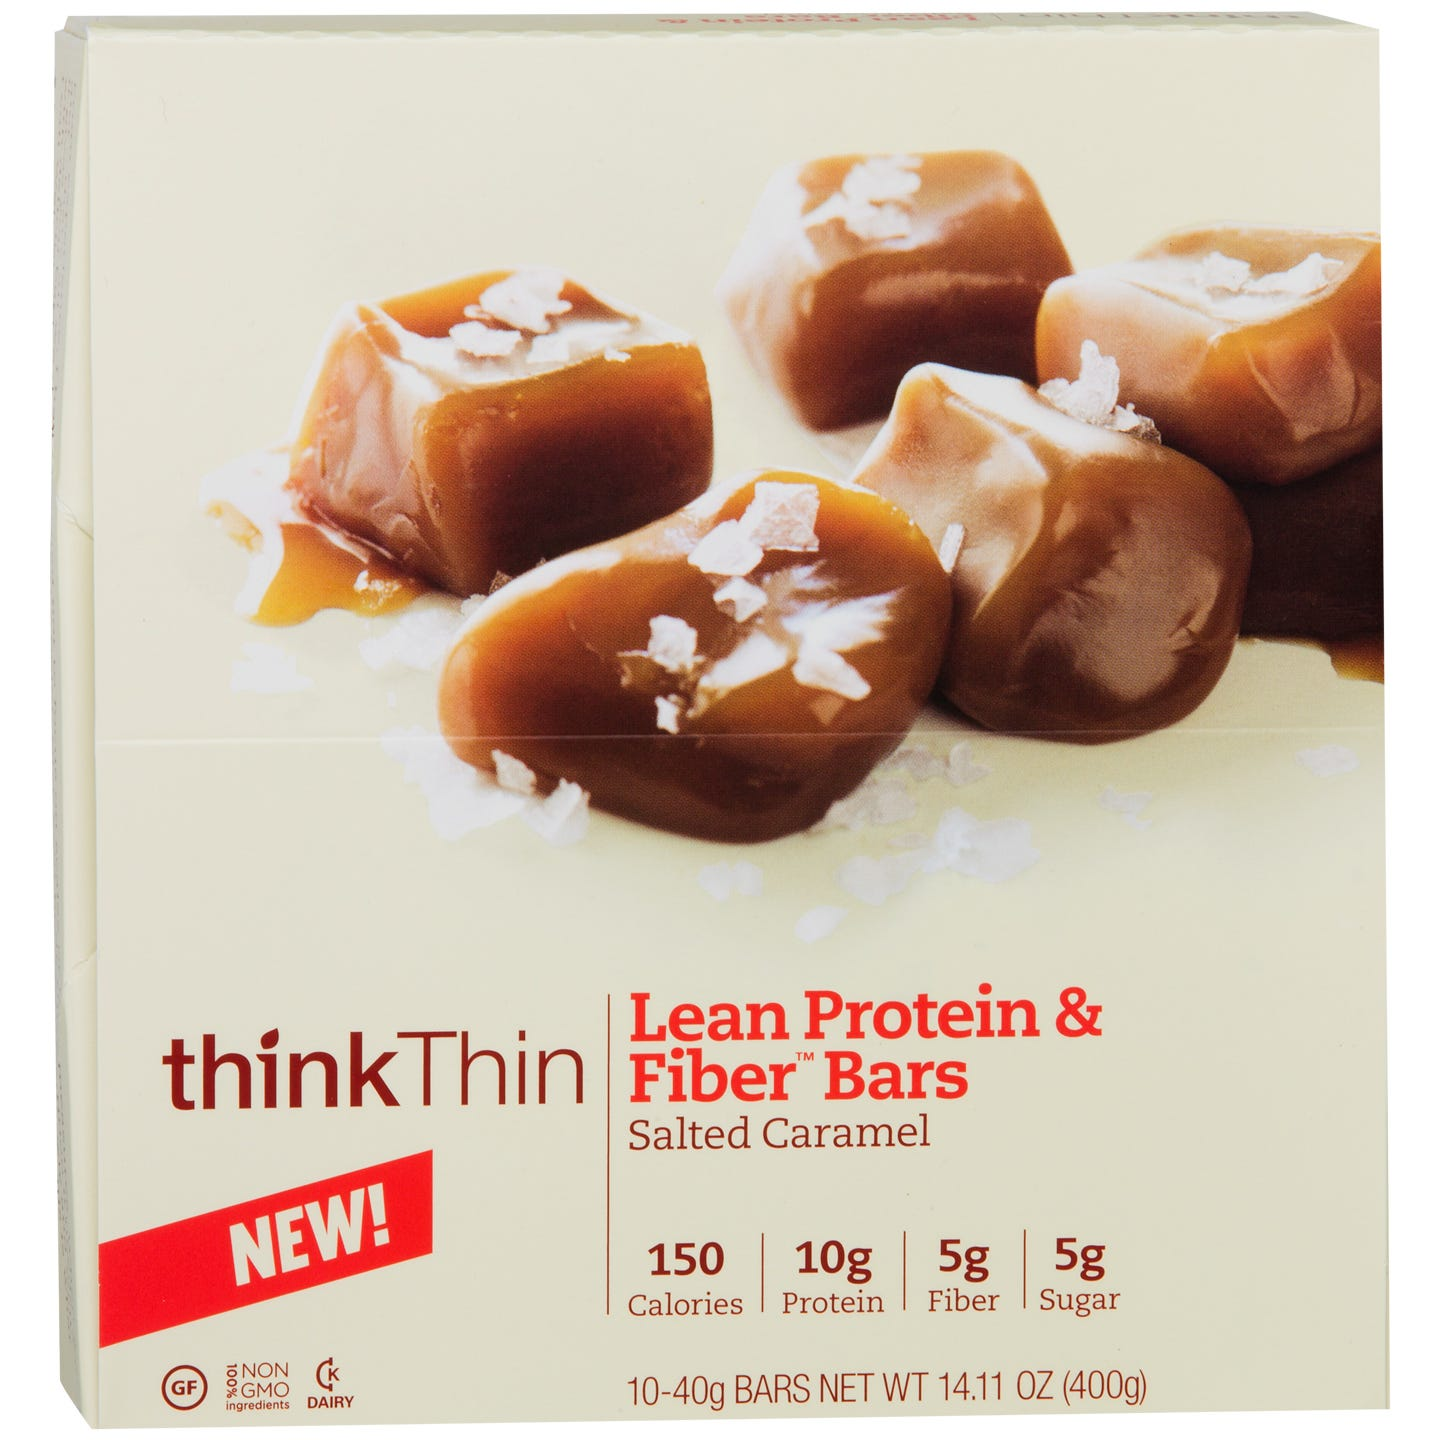 Lean Protein & Fiber Bar Salted Caramel (10 ct) - Think Thin Bars - Rapid Diet Weight Loss Products Shop